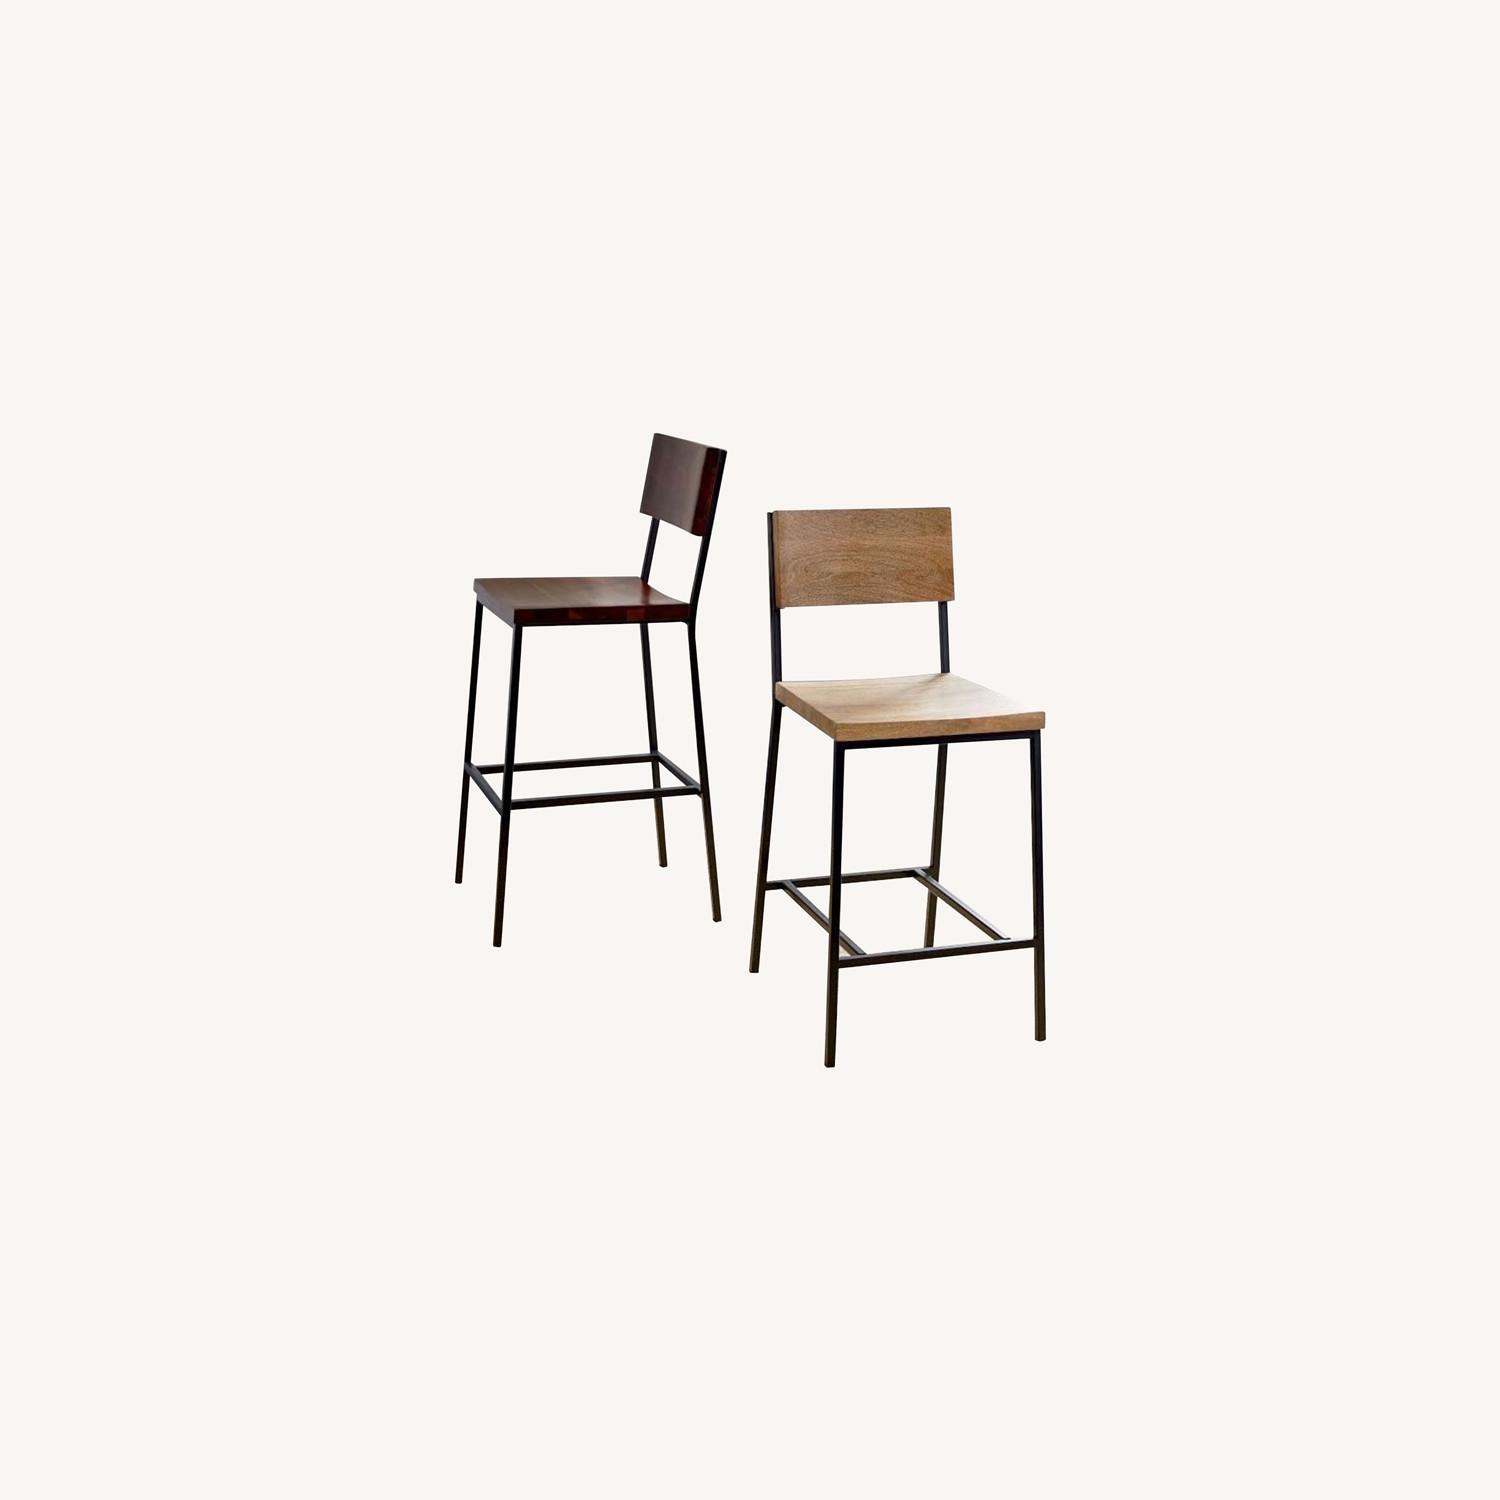 West Elm Rustic Counter Stools - Set of 2 - image-0